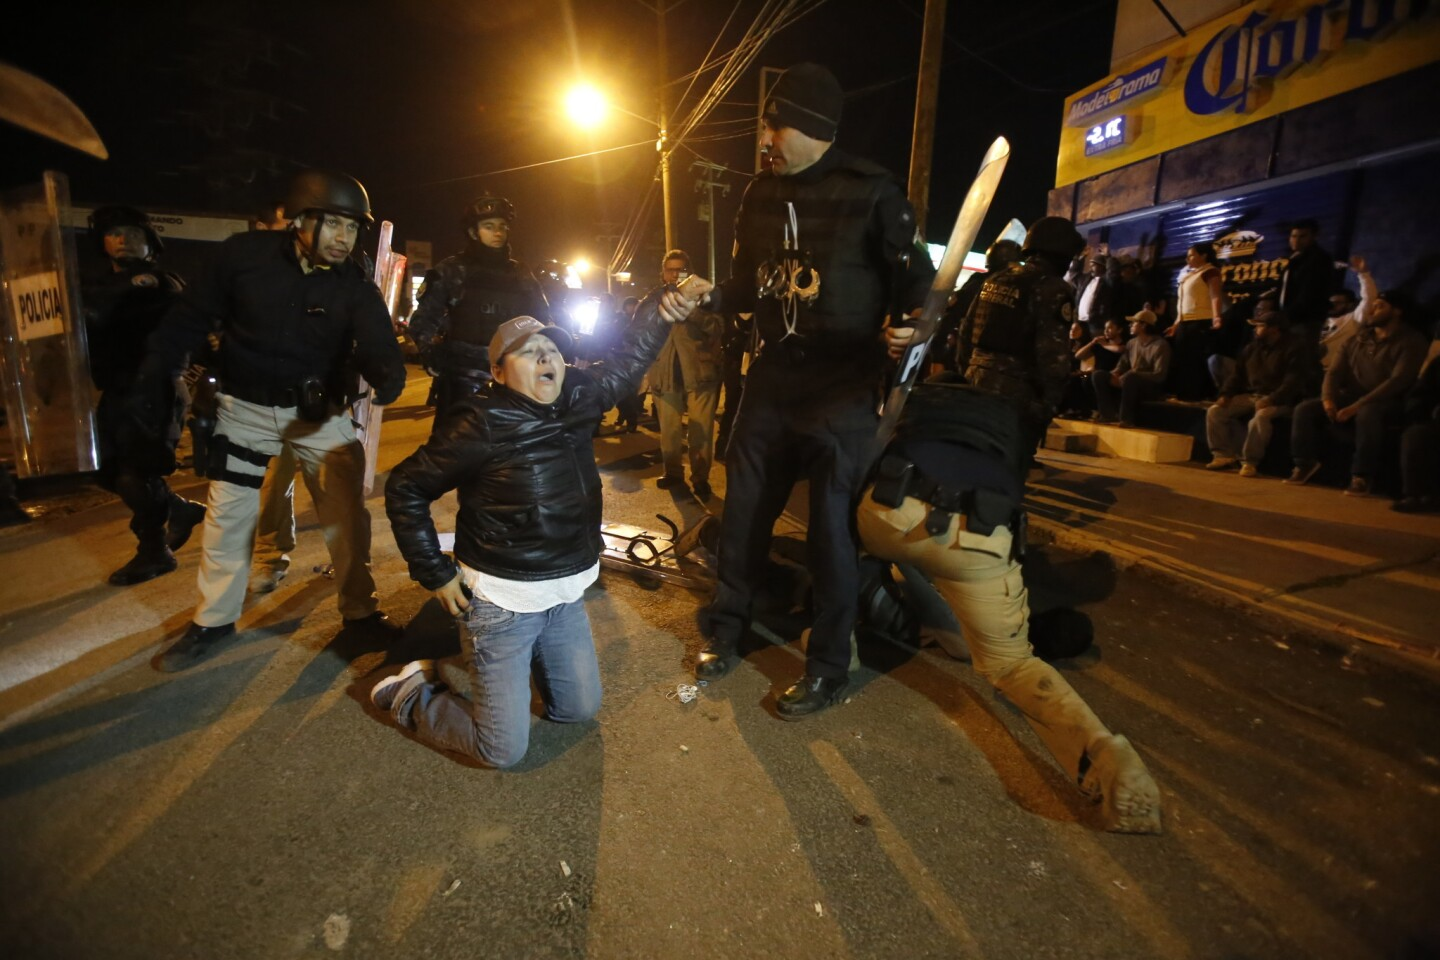 Tijuana Baja California, Mexico, January 7th, 2017: | Protesters are met by police presence in Rosarito. Police charged the protestors. | (Alejandro Tamayo, The San Diego Union-Tribune)